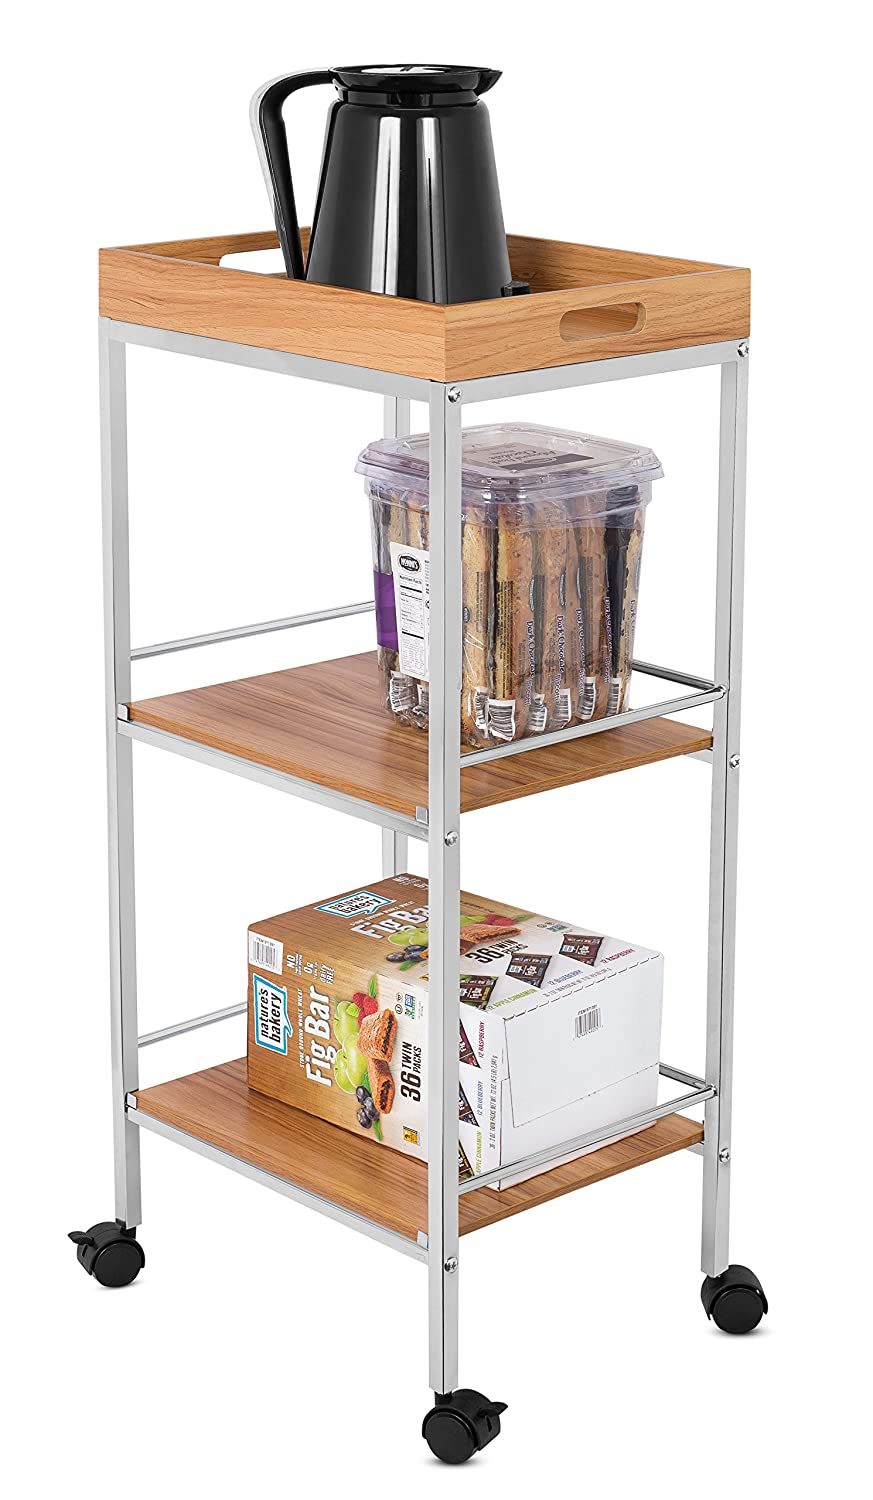 BirdRock Home 3-Tier Rolling Bar Serving Cart | Kitchen Bathroom Trolley with Locking Wheels | Removable Trays | Portable Metal Utility Storage | Tea Coffee Drink Home Cart 10826